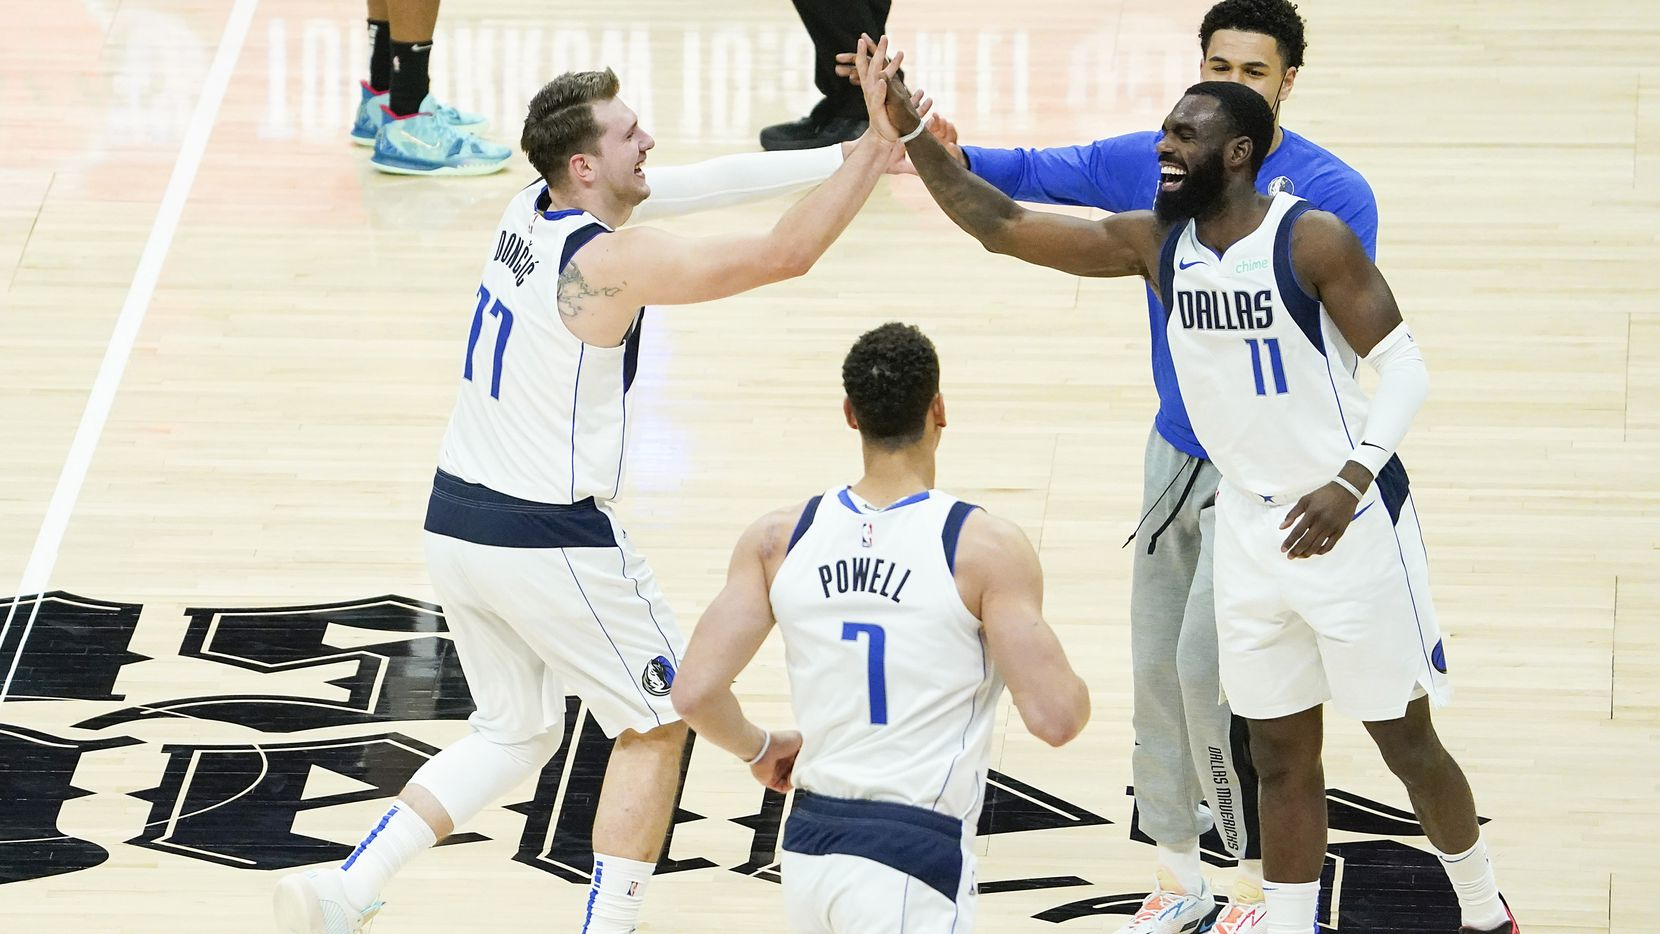 Dallas Mavericks guard Luka Doncic (77) celebrates with forward Tim Hardaway Jr. (11) after scoring during the third quarter of an NBA playoff basketball game against the LA Clippers at the Staples Center on Wednesday, June 2, 2021, in Los Angeles.